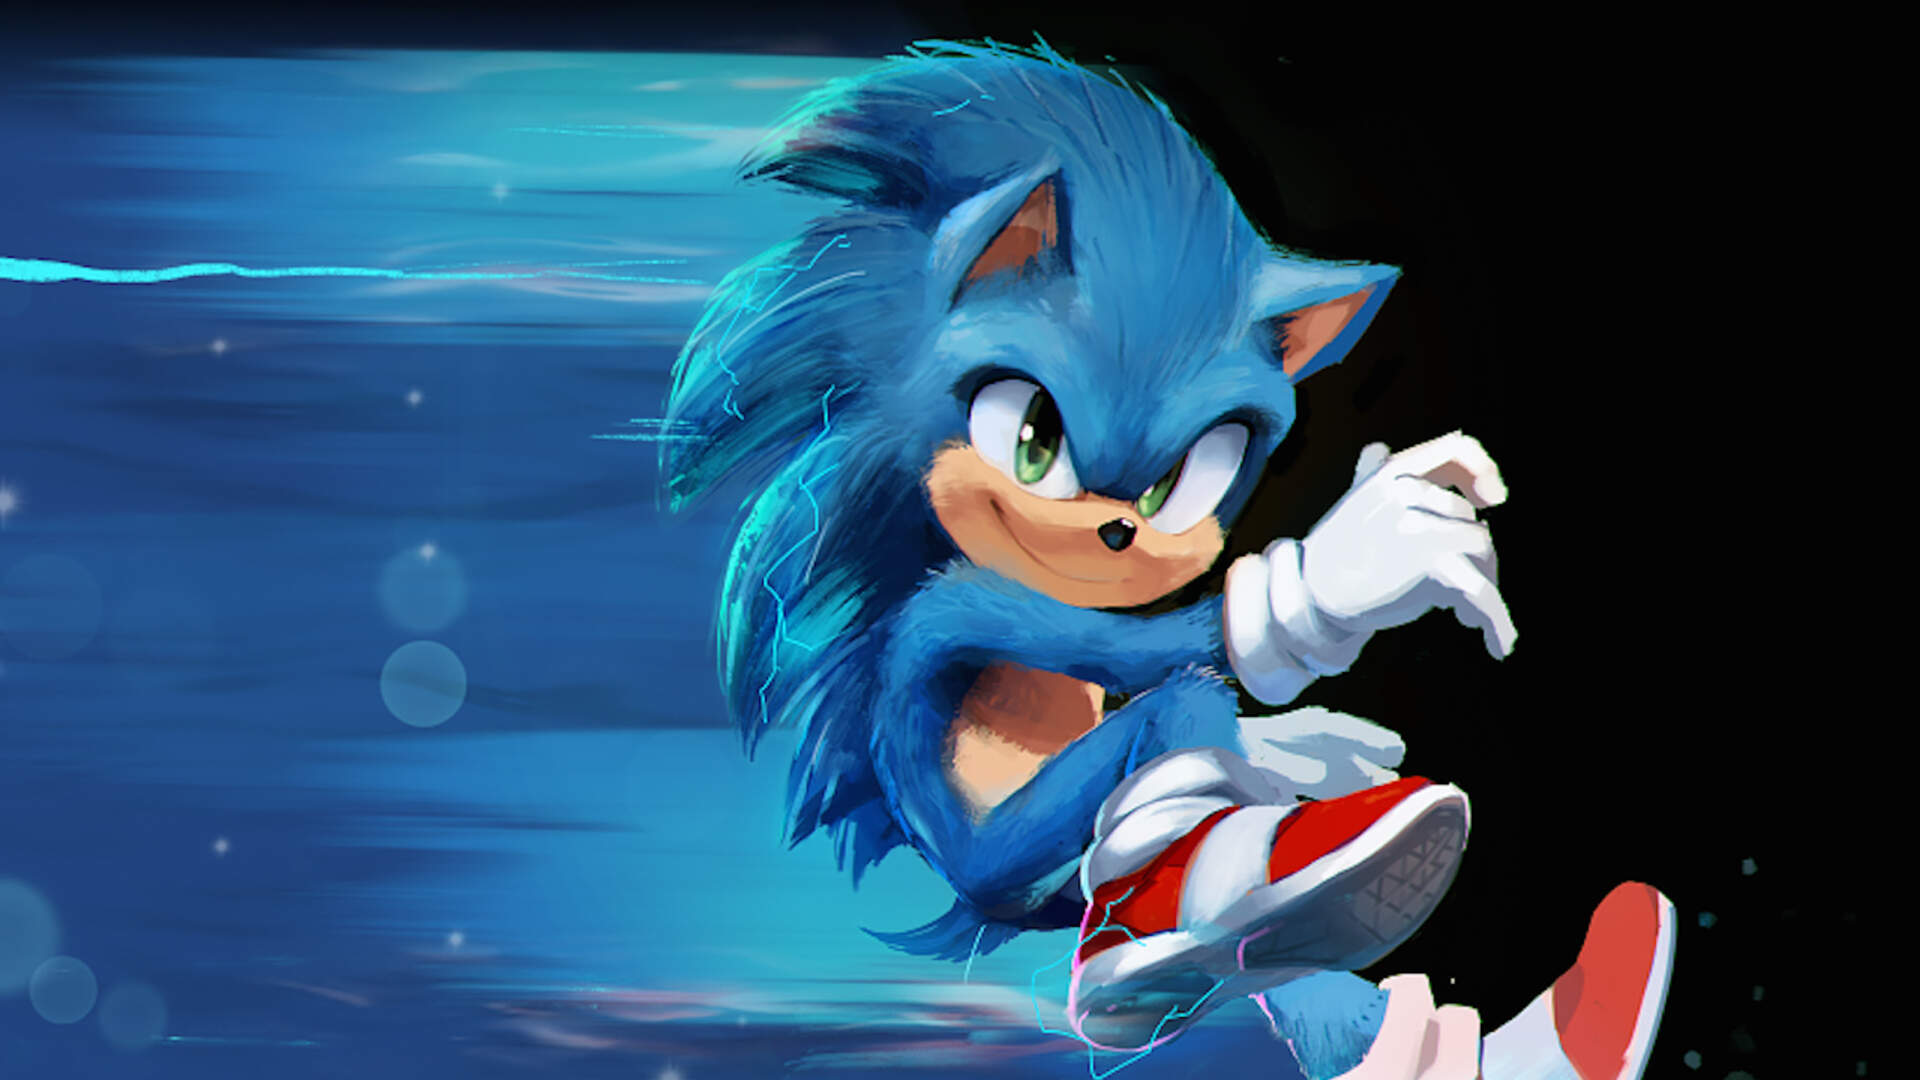 The Artist Who Led Movie Sonic S Redesign Has A Long History With The Hedgehog Usgamer